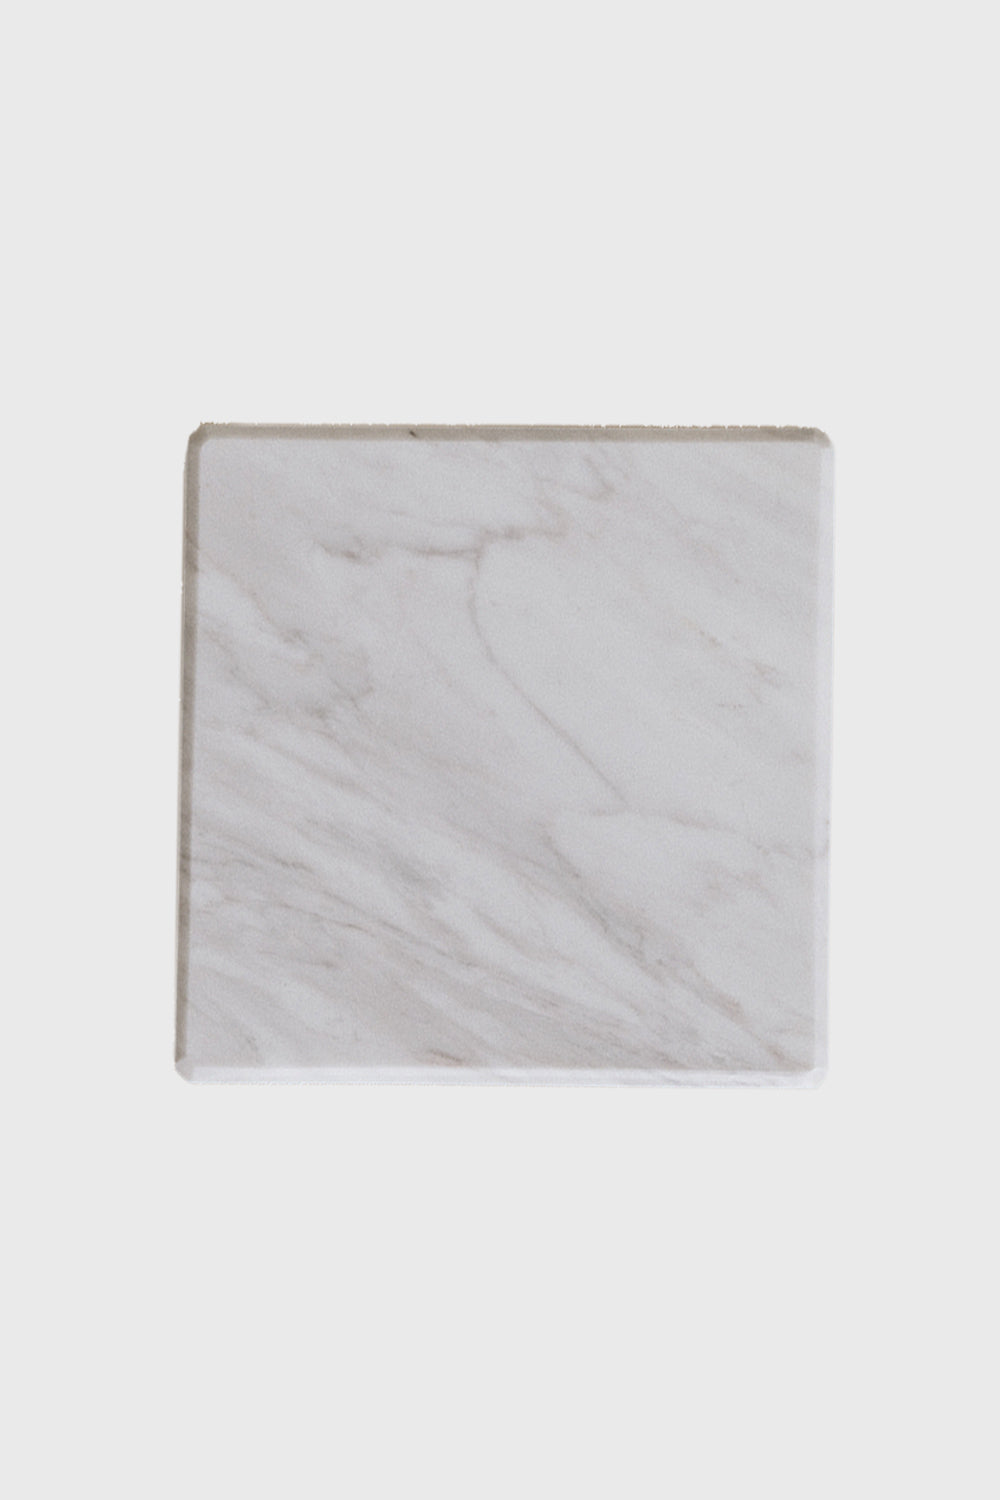 Marble & Co Piazzo Marble Coaster